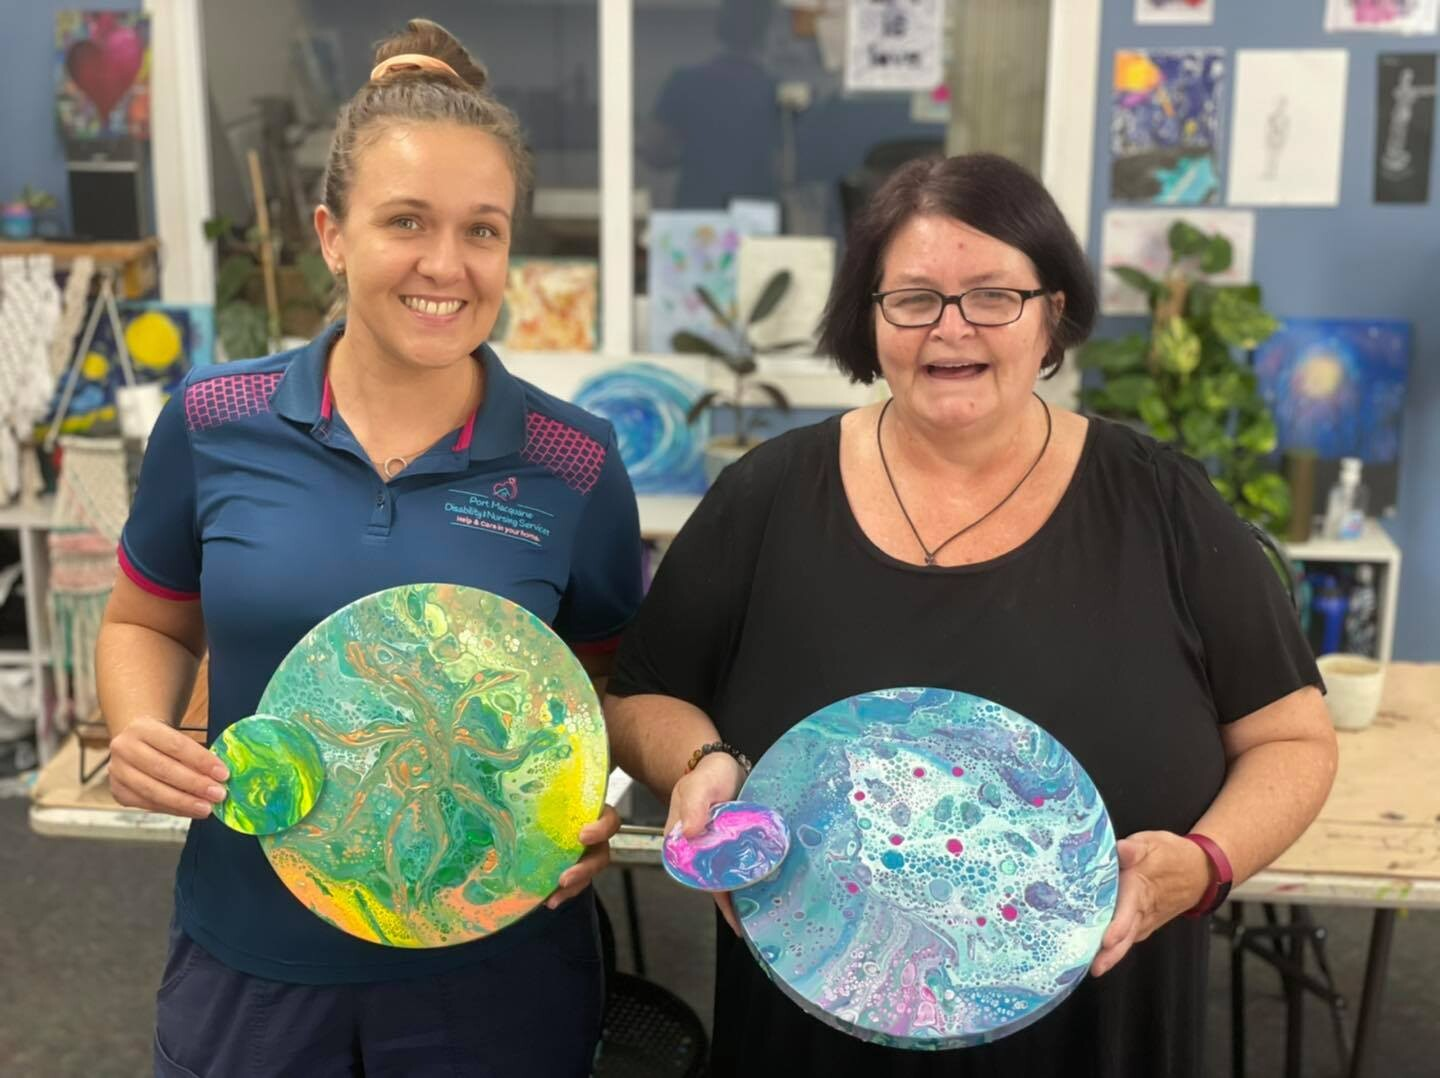 Family Acrylic Pour - Saturday 3rd July 2-4pm